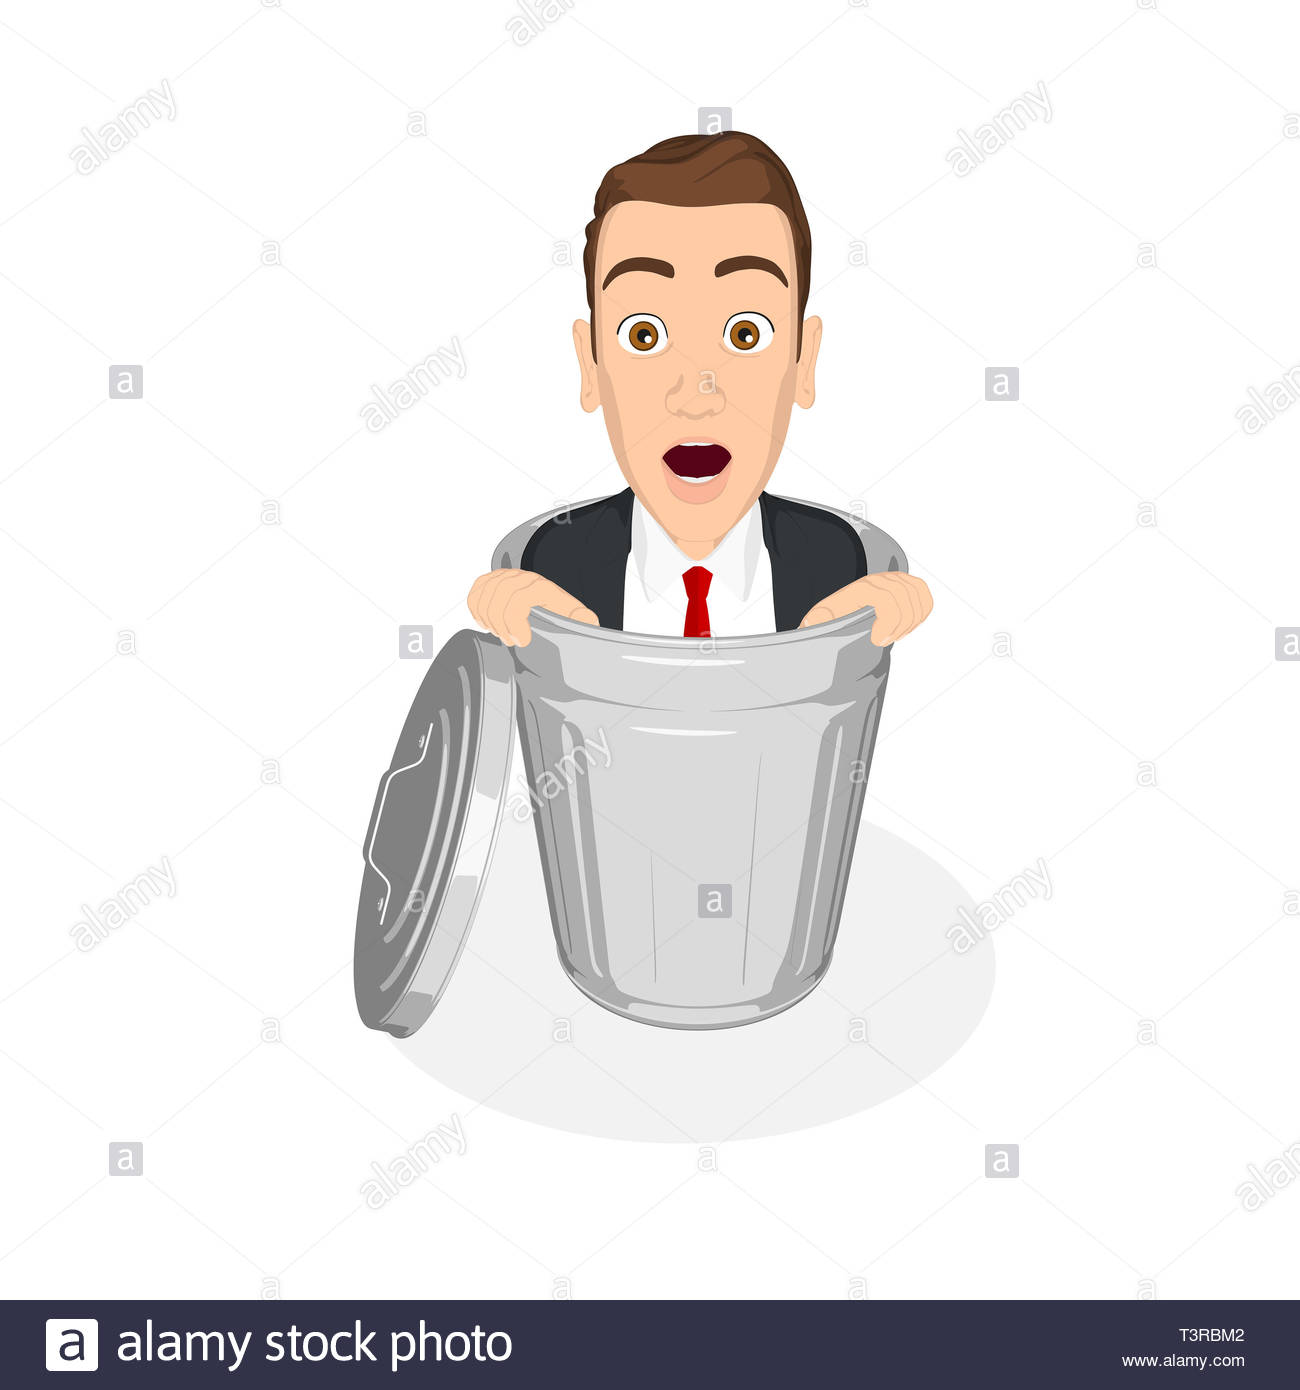 businessman inside trash can, illustration in flat design with isolated white background - Stock Image